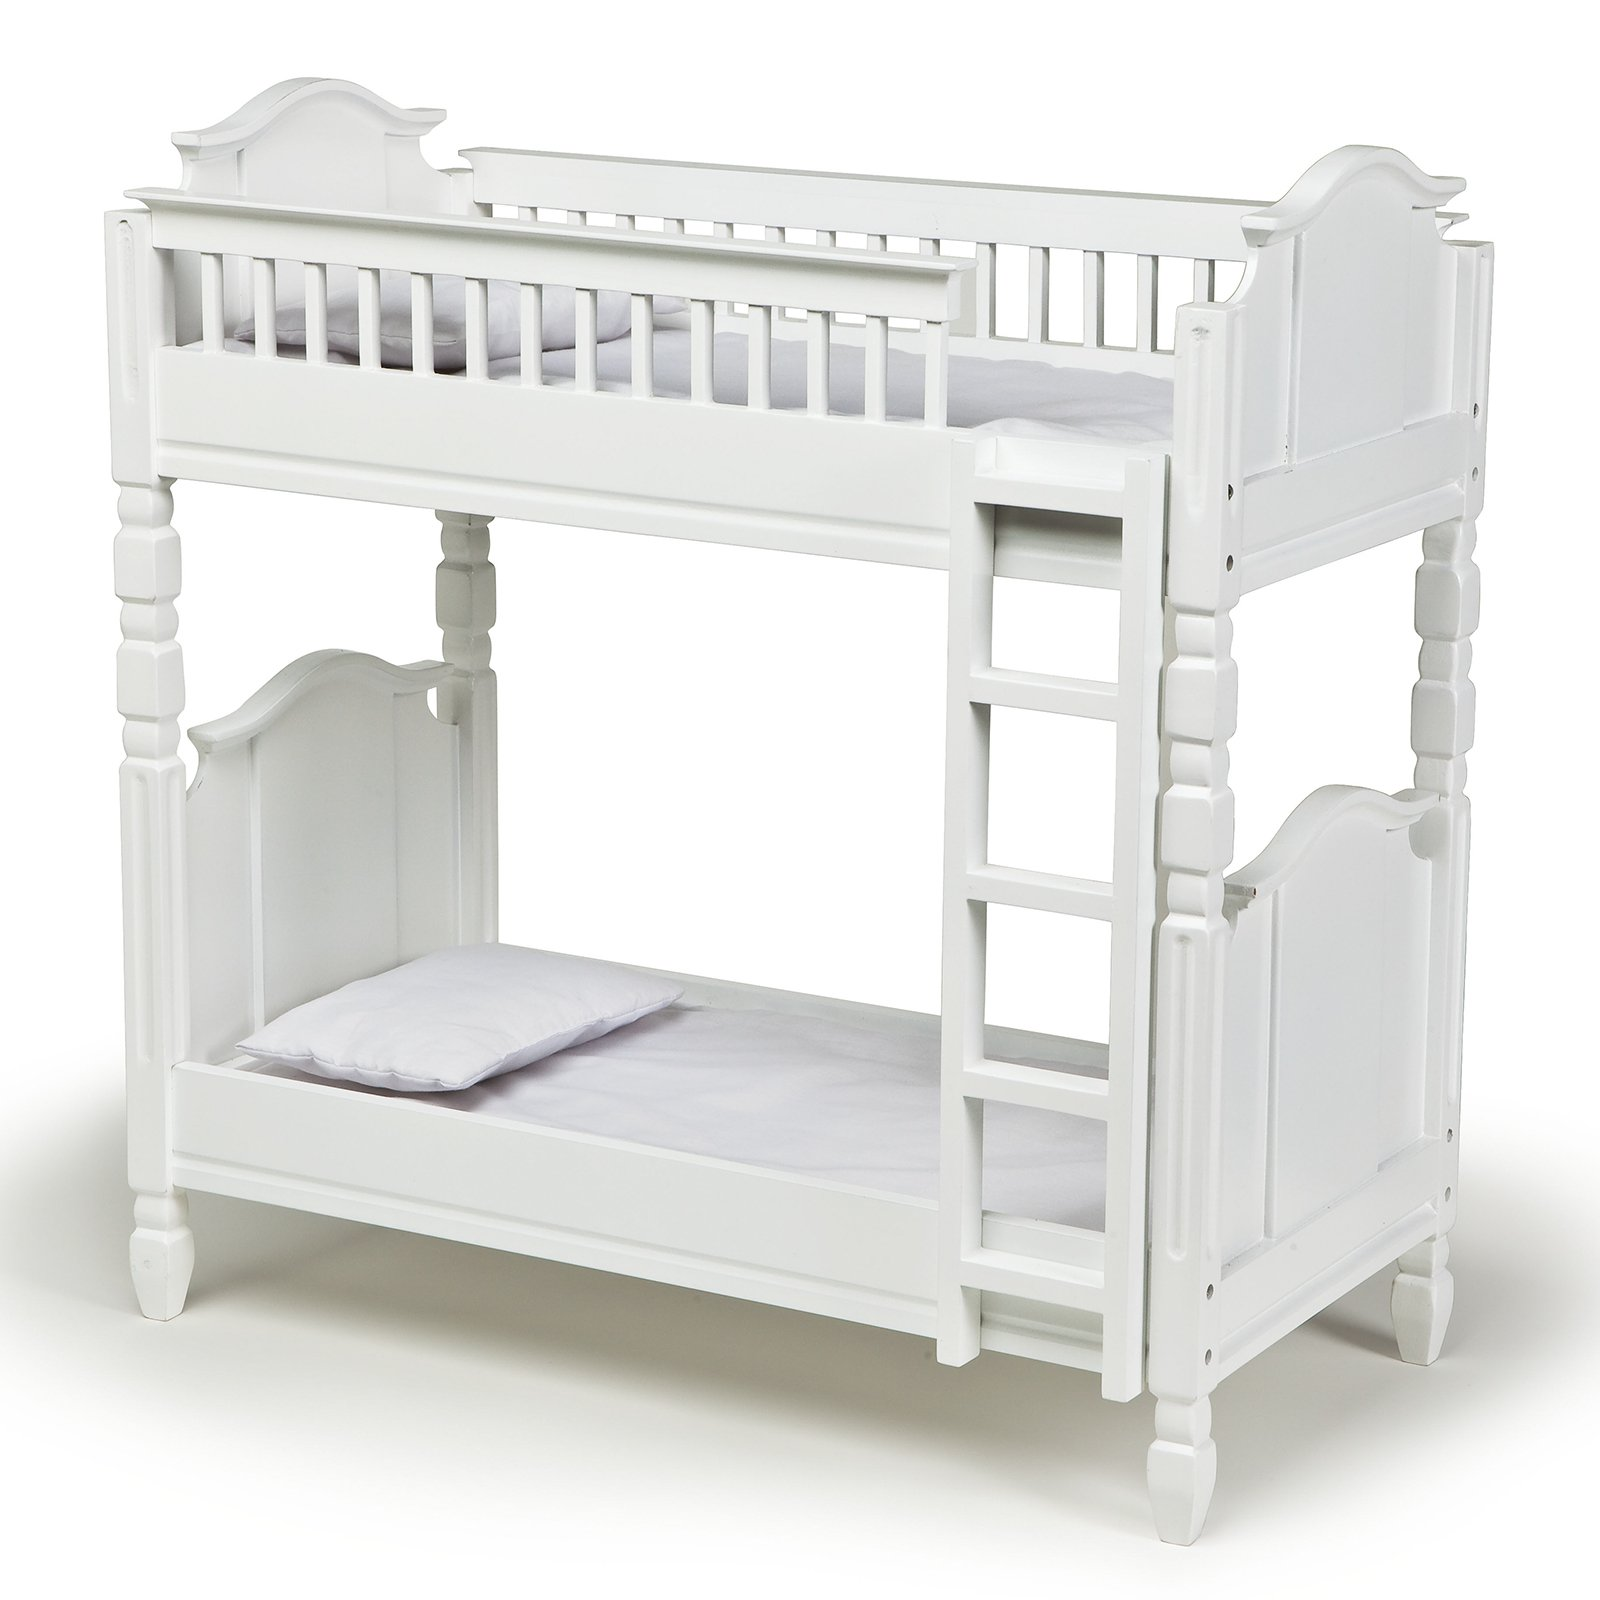 Laurent Doll Bunk Bed 18 in. Doll Accessory